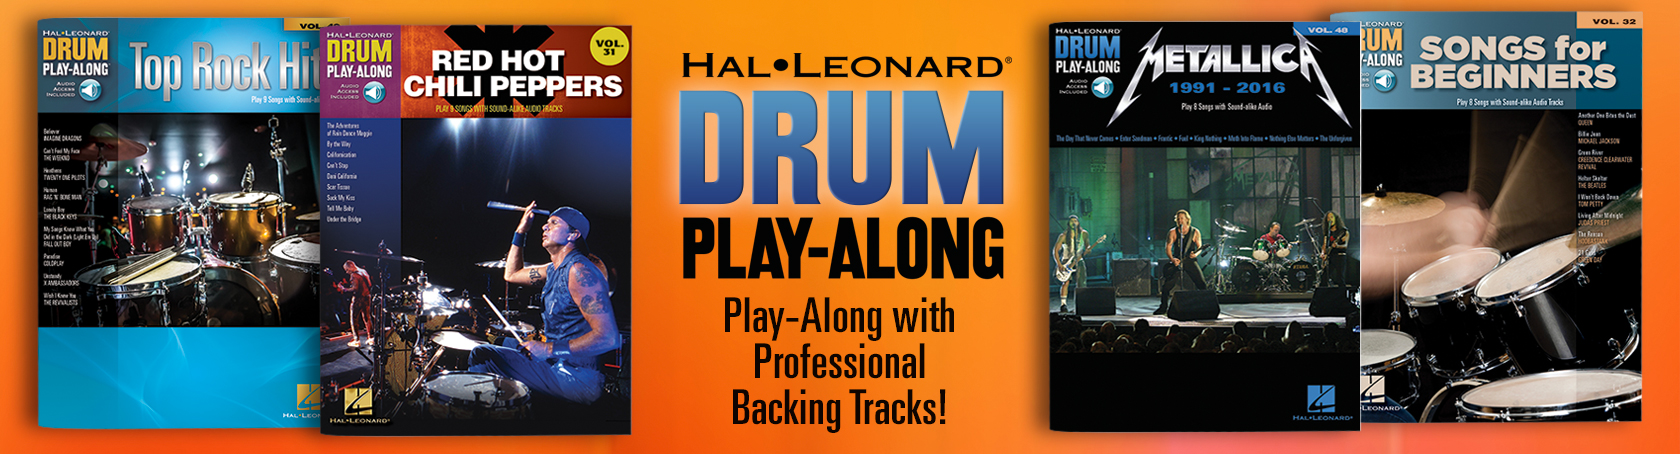 Drum Play-Along - Play-Along with Professional Backing Tracks